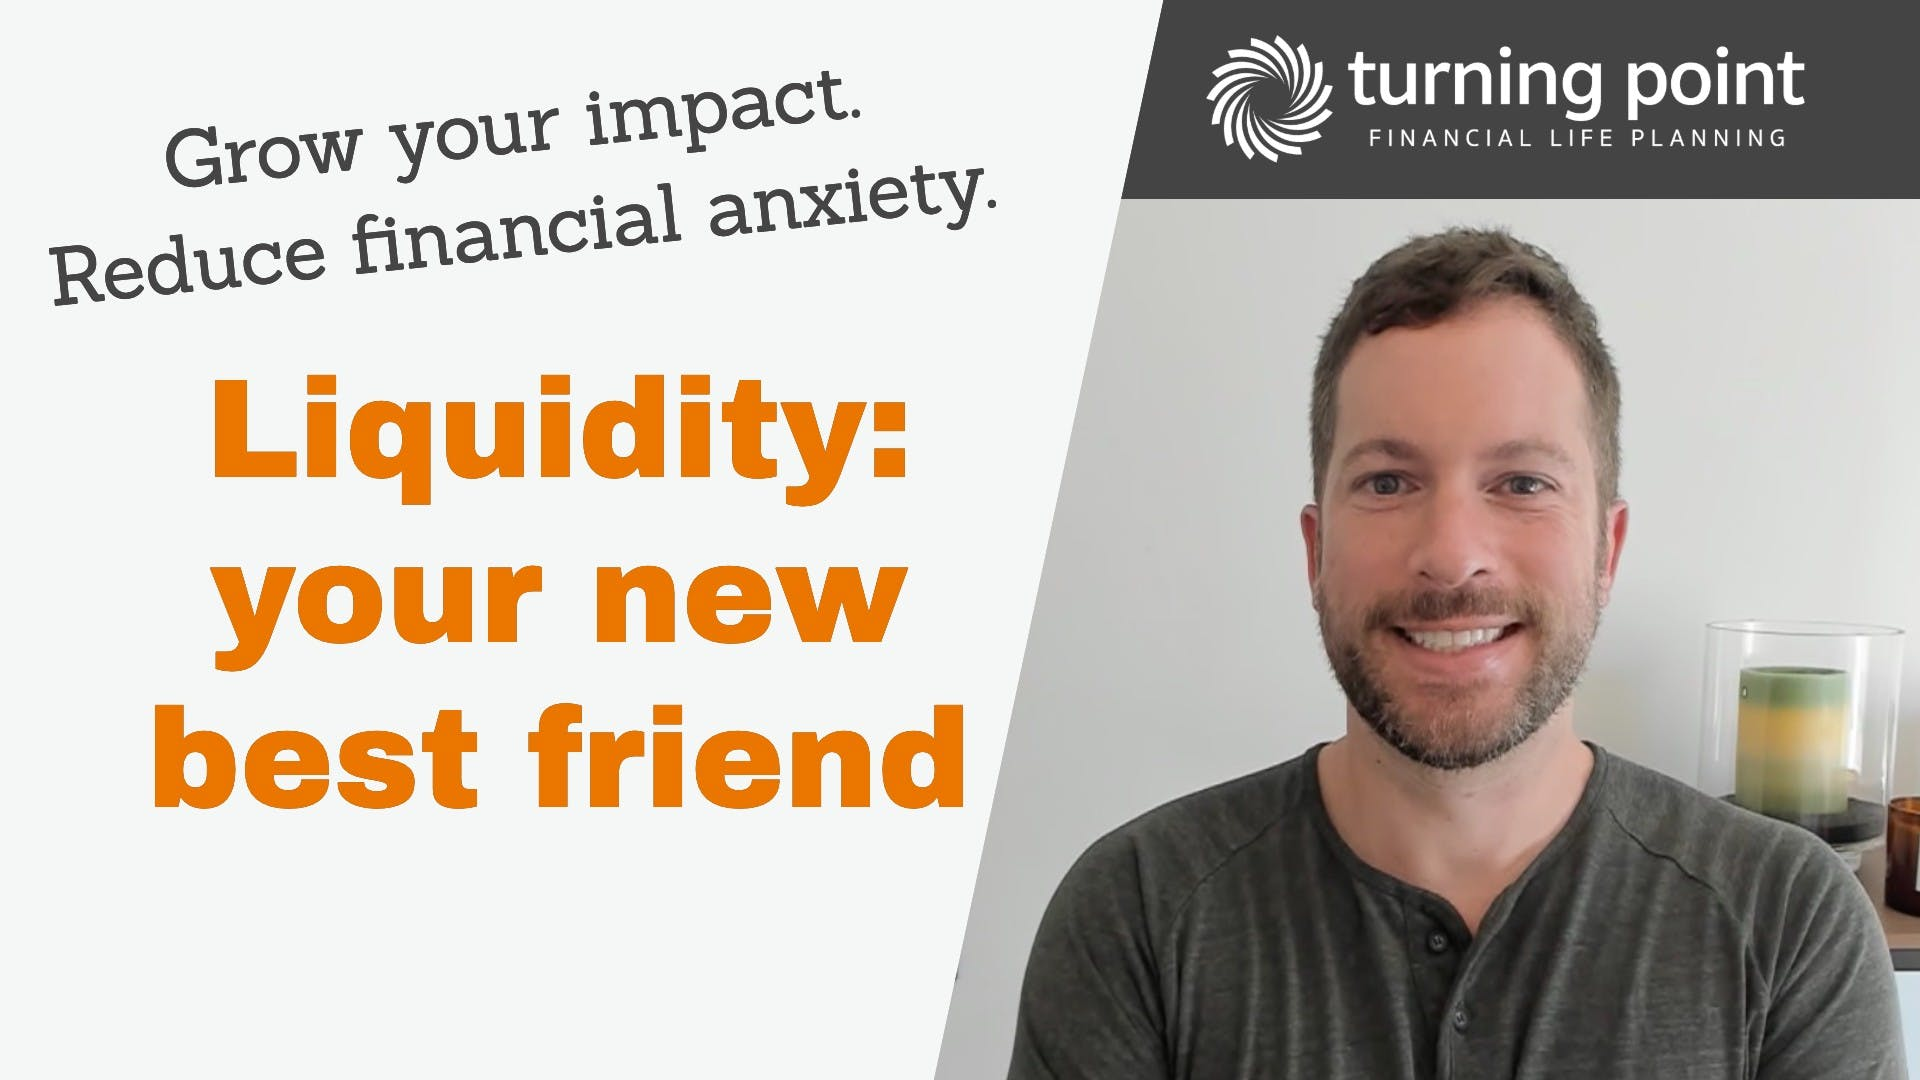 Picture of Dave thinking happy thoughts about building liquidity.